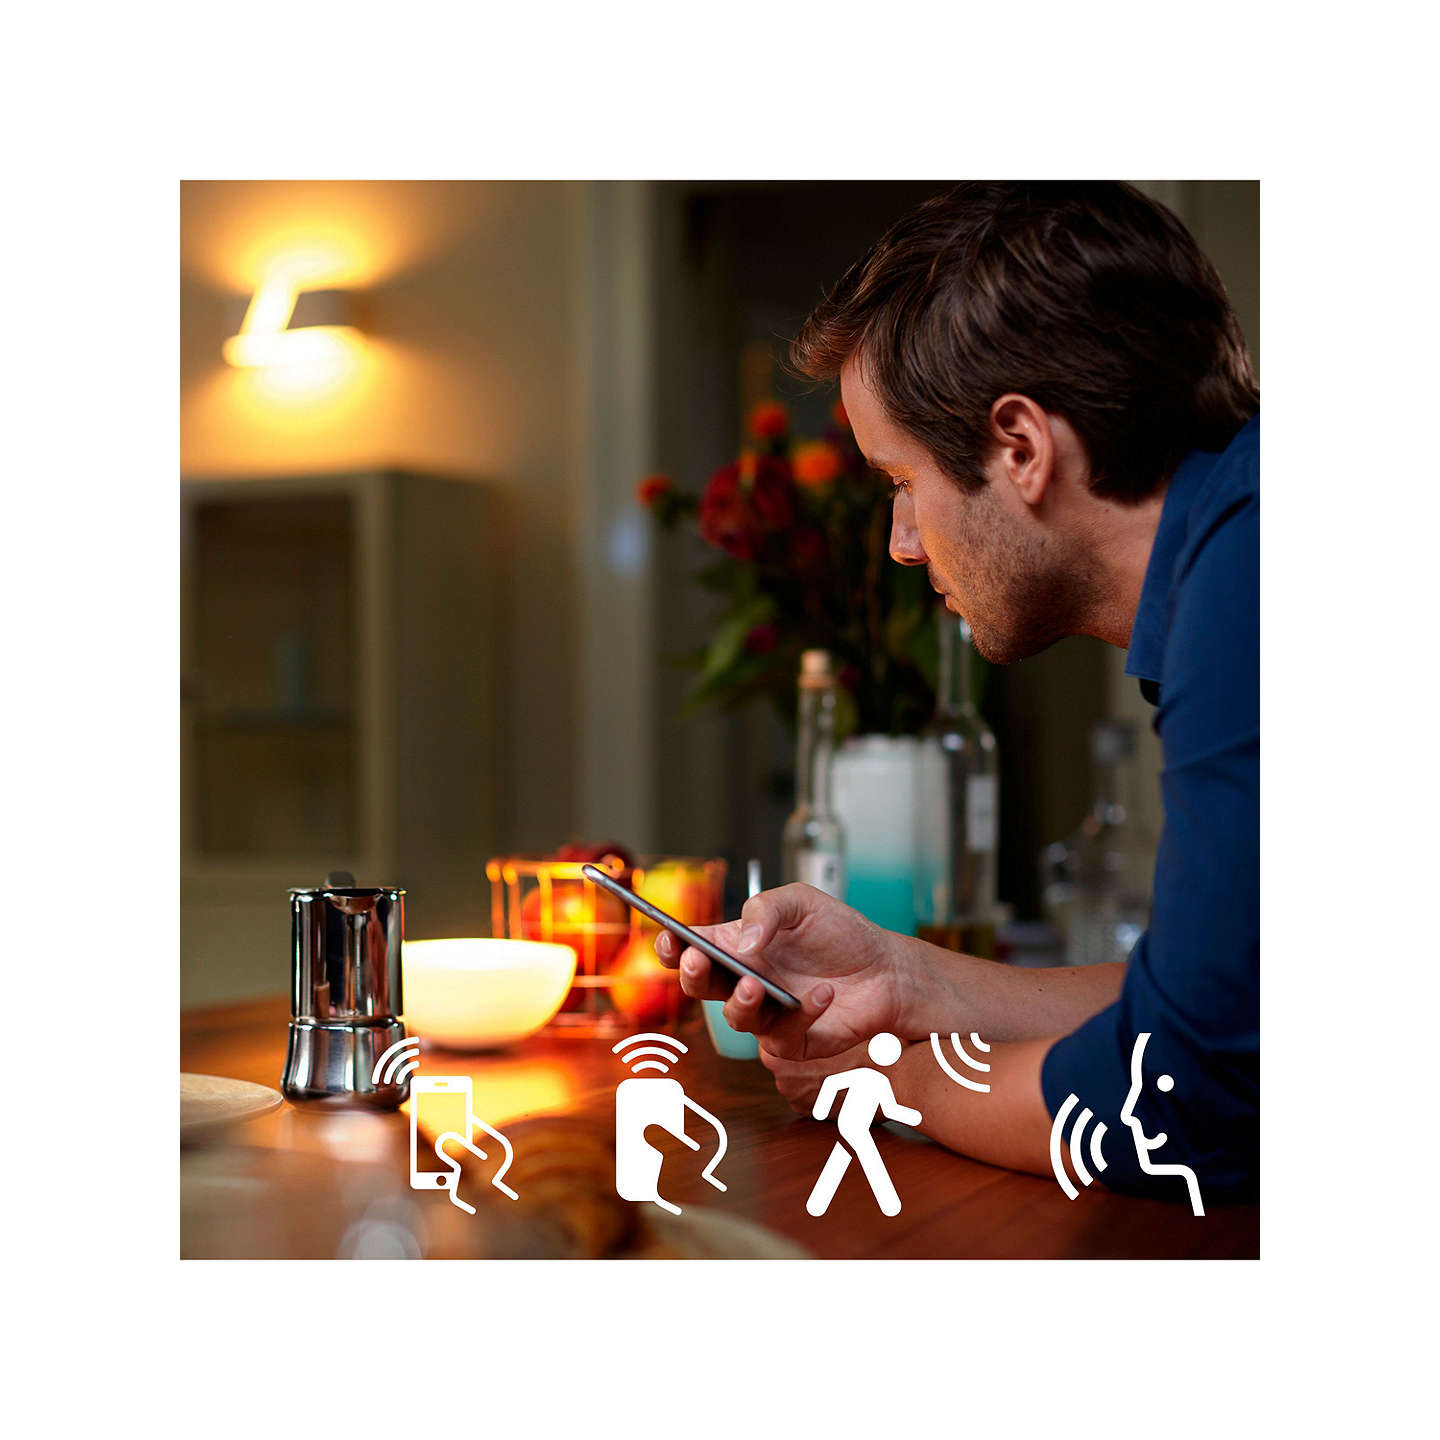 BuyPhilips Hue White Ambiance Wireless Lighting LED Light Bulb, 5.5W GU10 Bulb, Pack of 2 Online at johnlewis.com